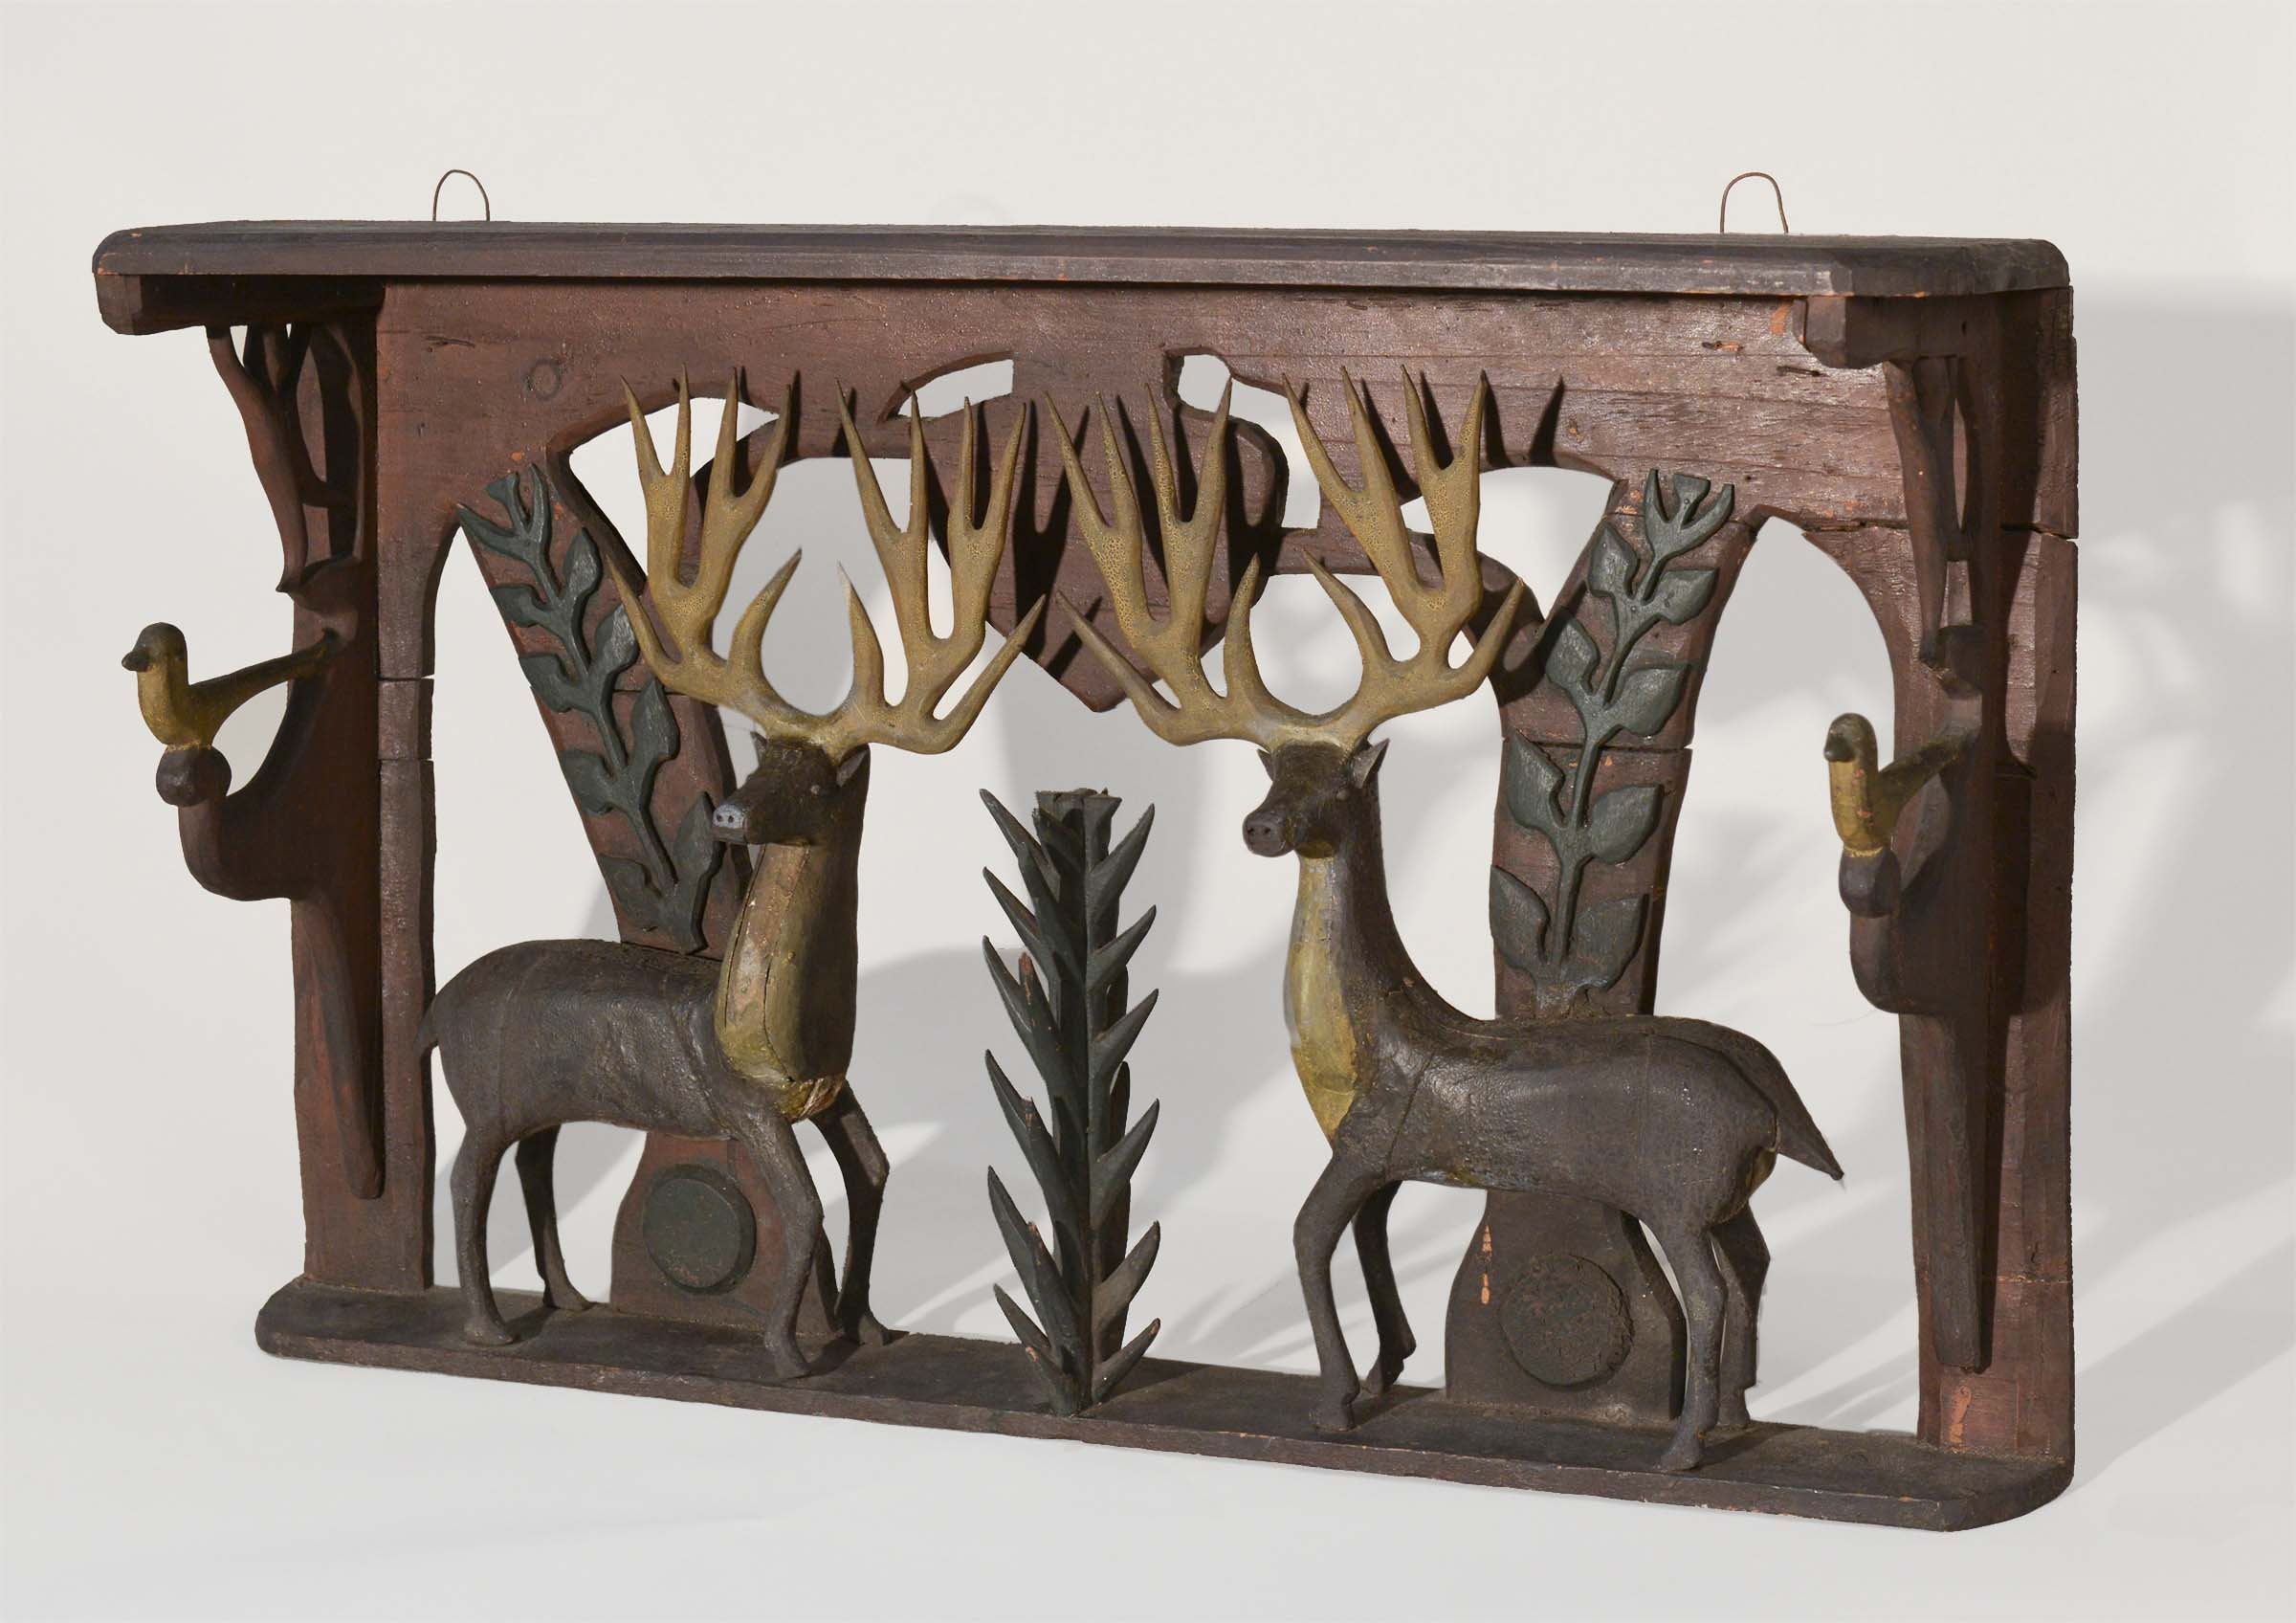 Anonymous, Maine, Shelf With Moose, c. 1920, carved wood with paint, 28h x 22w x 7d in.